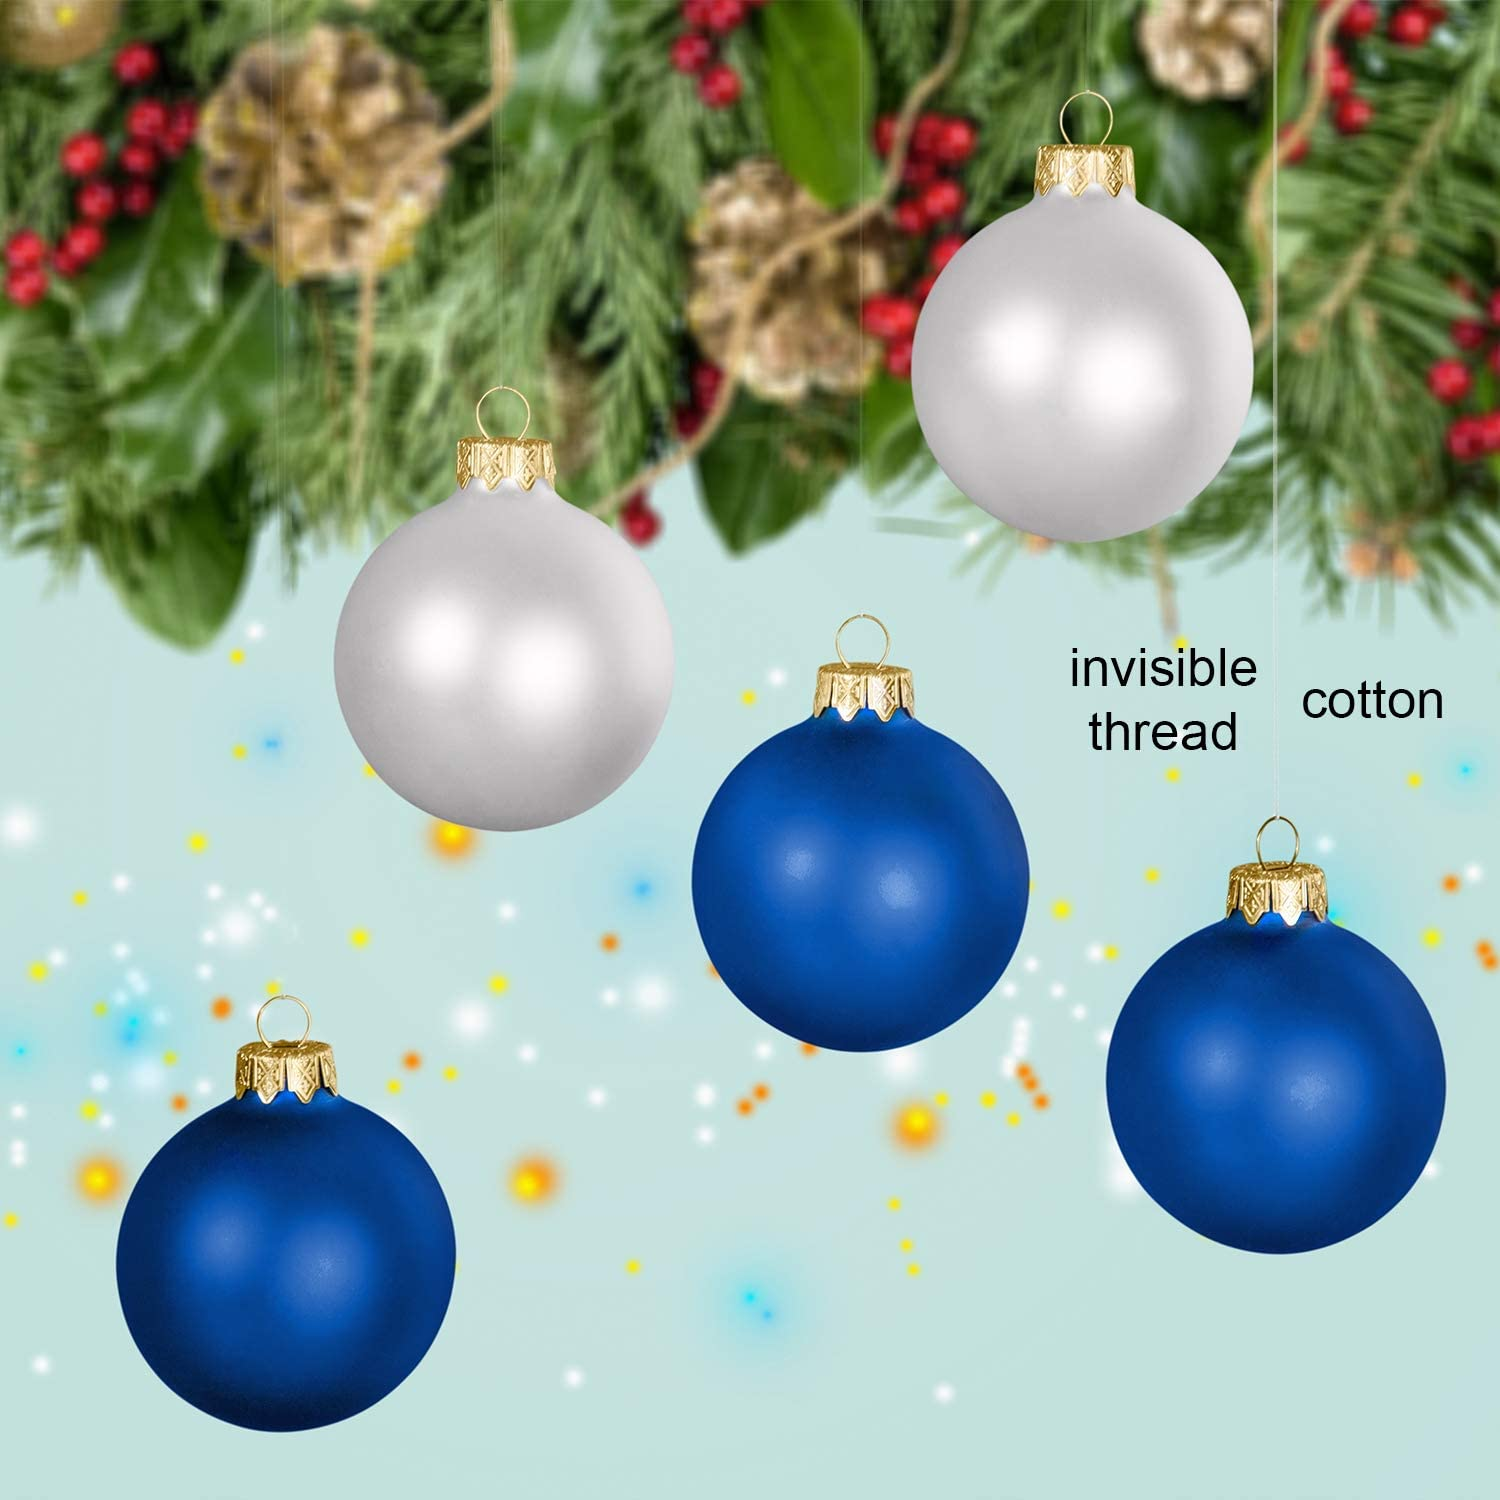 200 m Clear Nylon Invisible Thread String for Hanging Christmas Ornaments Bracelet Making Sew Hobby 0.25mm Clear Beading Thread with Bead Needle